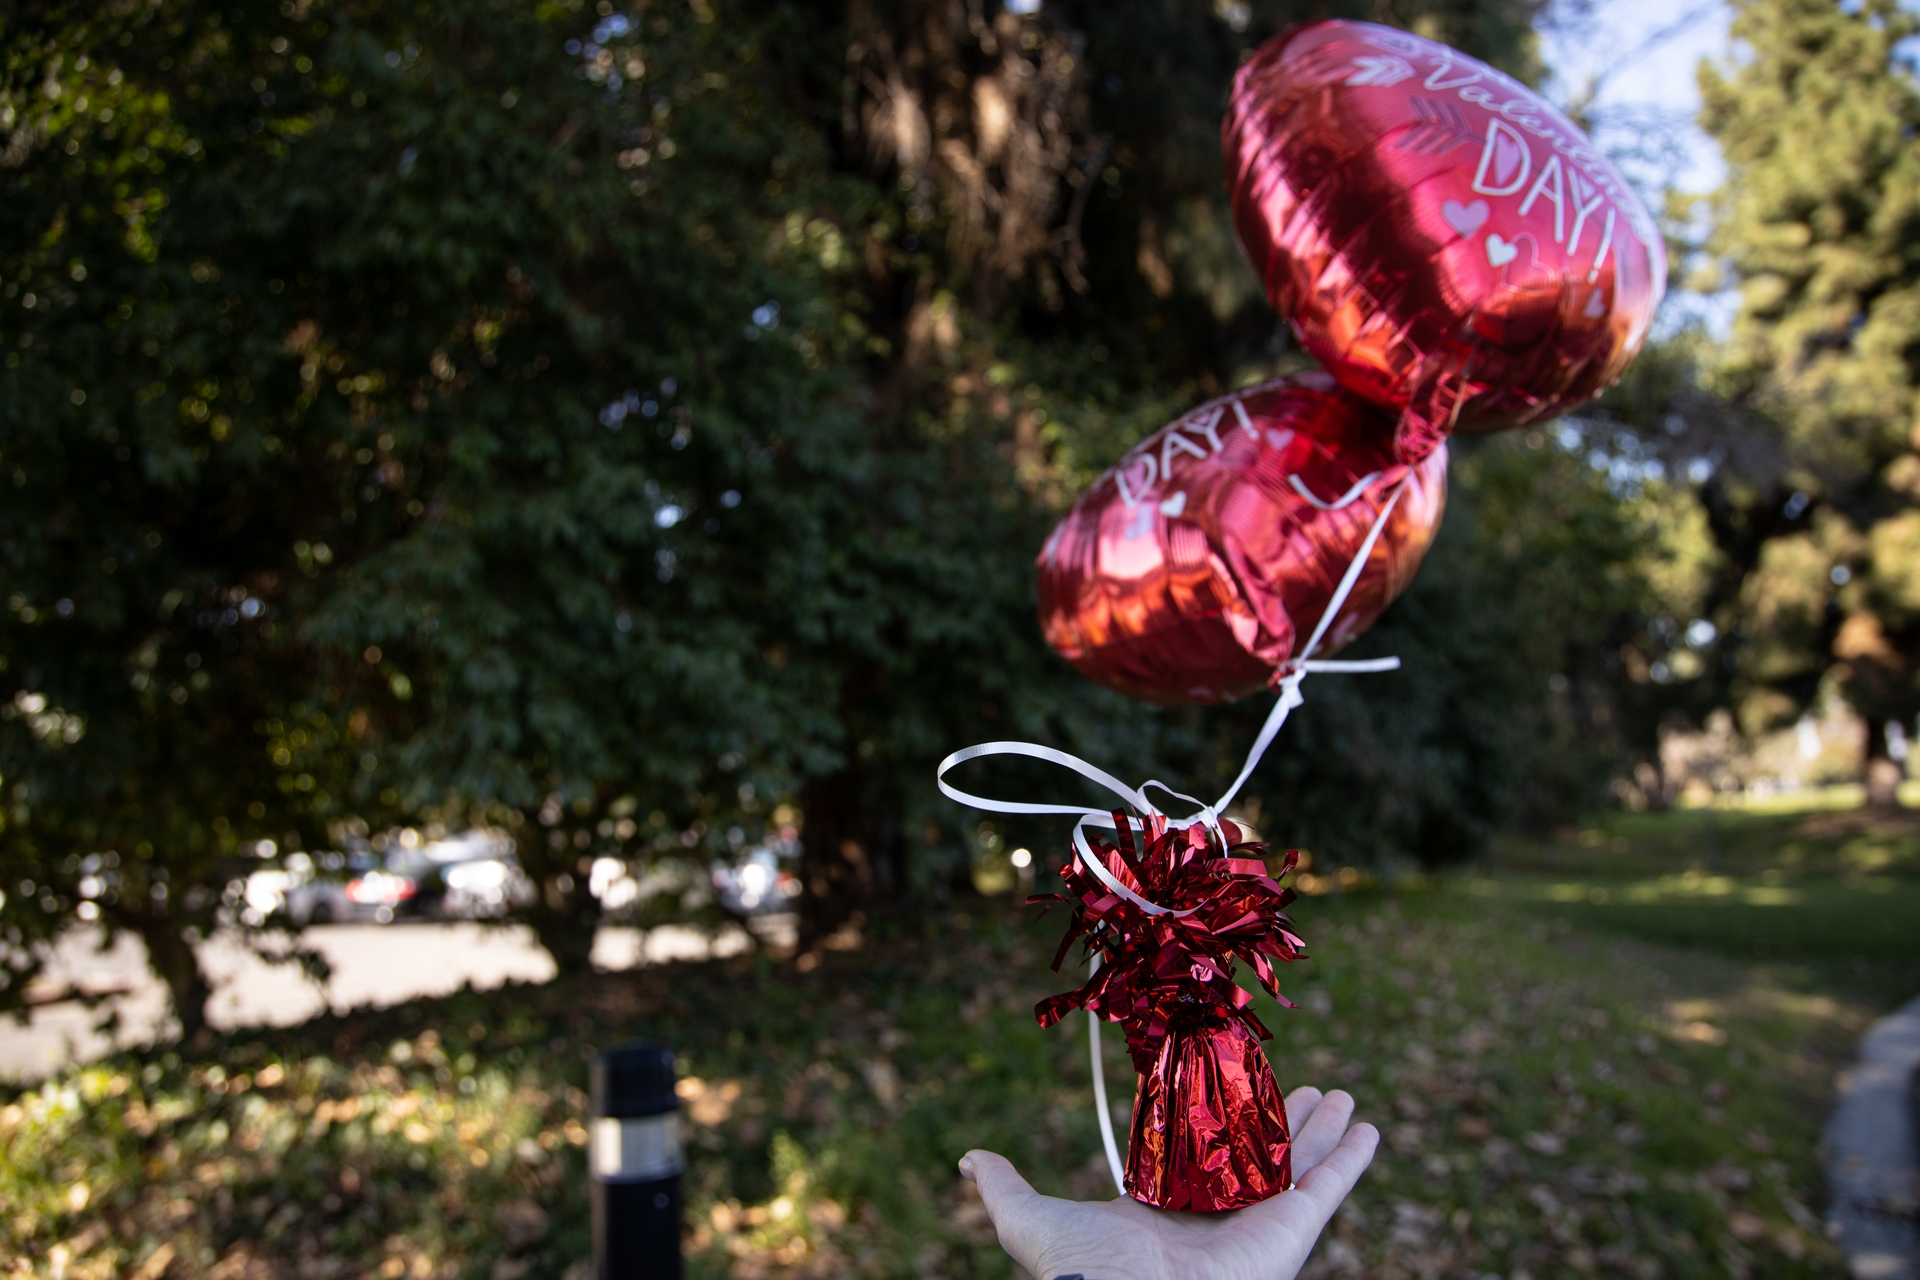 Metallic balloons should only be enjoyed outdoors while always attached to a weight — as state law requires — to prevent even unintentional releases.